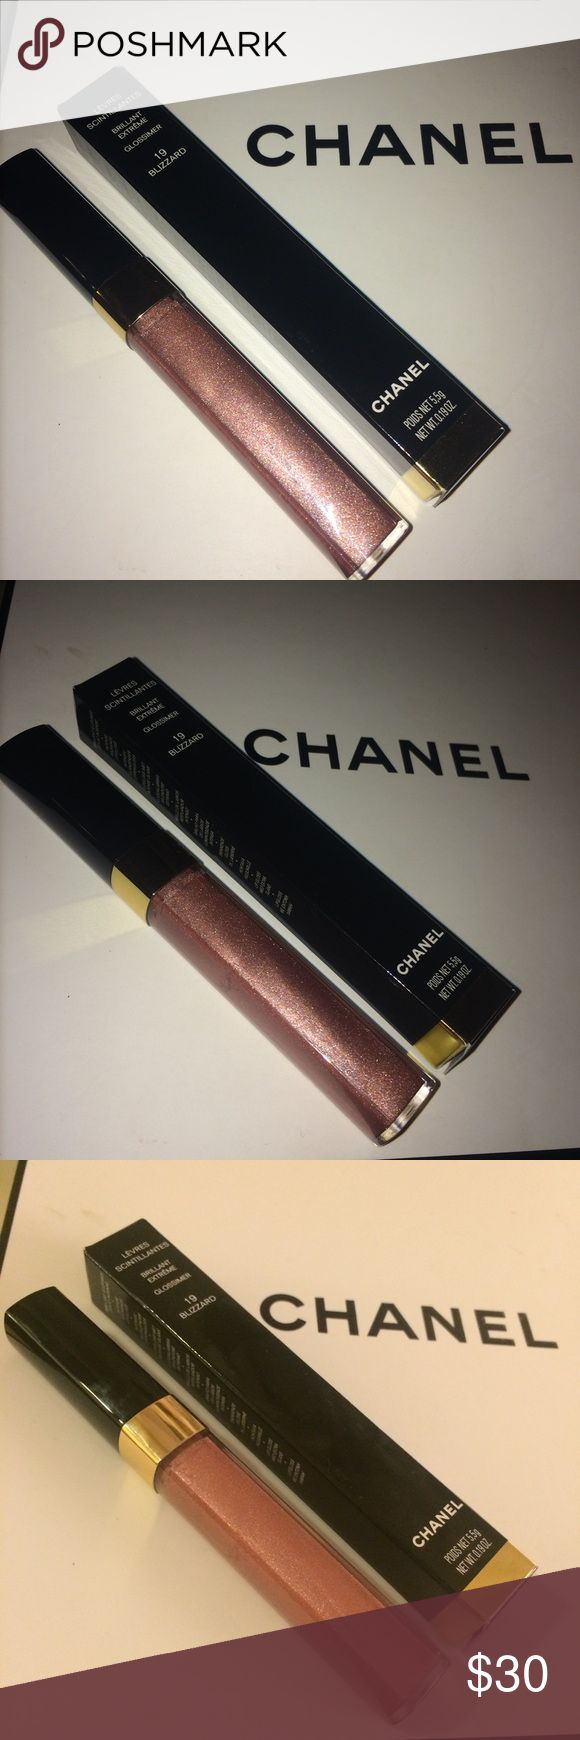 CHANEL LIP GLOSS (NEW) New lipgloss Chanel CHANEL Makeup Lip Balm & Gloss